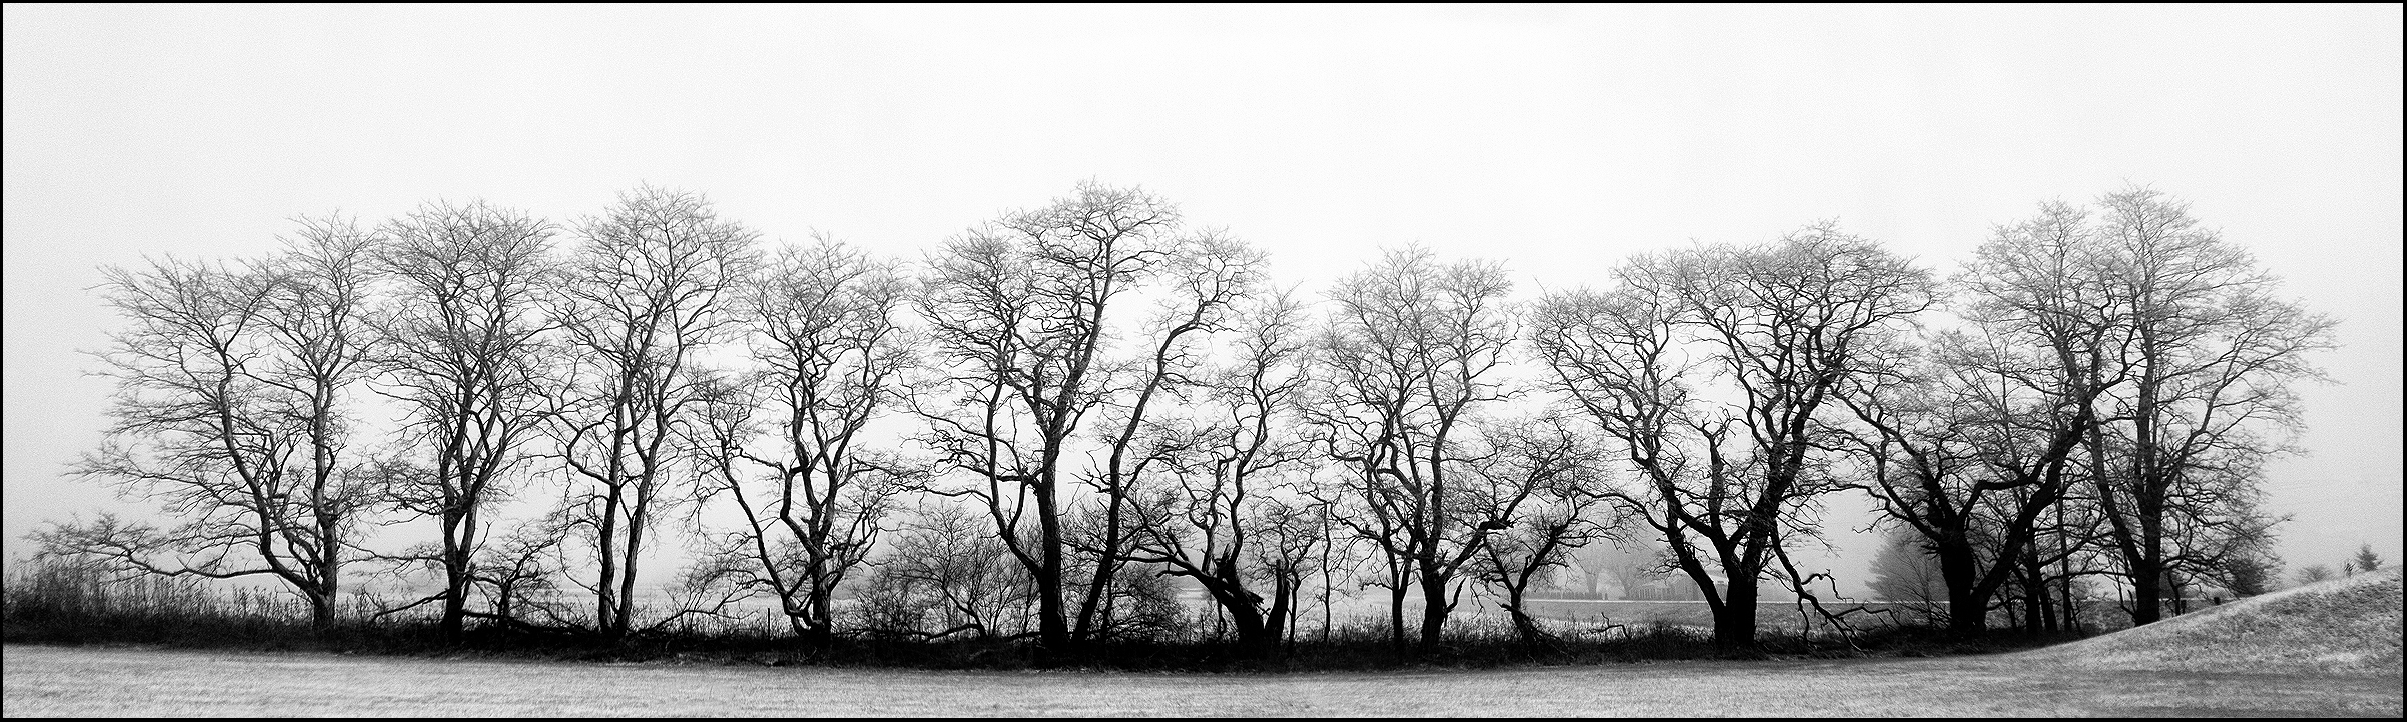 Trees  , Dick Ainsworth  Kodak Brownie 120 film camera. Seven exposures, combined in a composite panorama. Processed with various digital tools.  Dick Ainsworth ,  ainsworth@qwerty.com